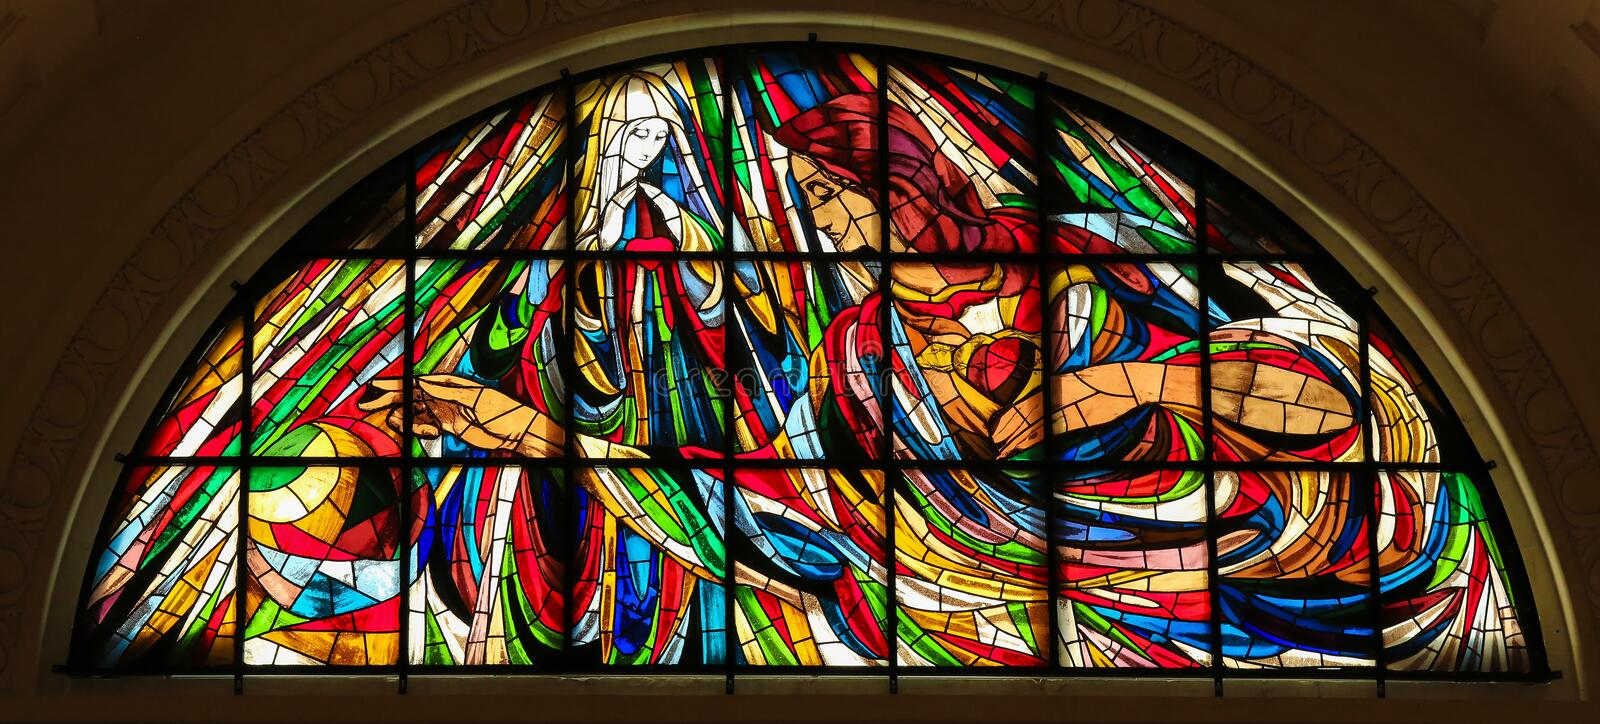 Stained Glass - Immaculate Heart of Mary in Fatima stock photos